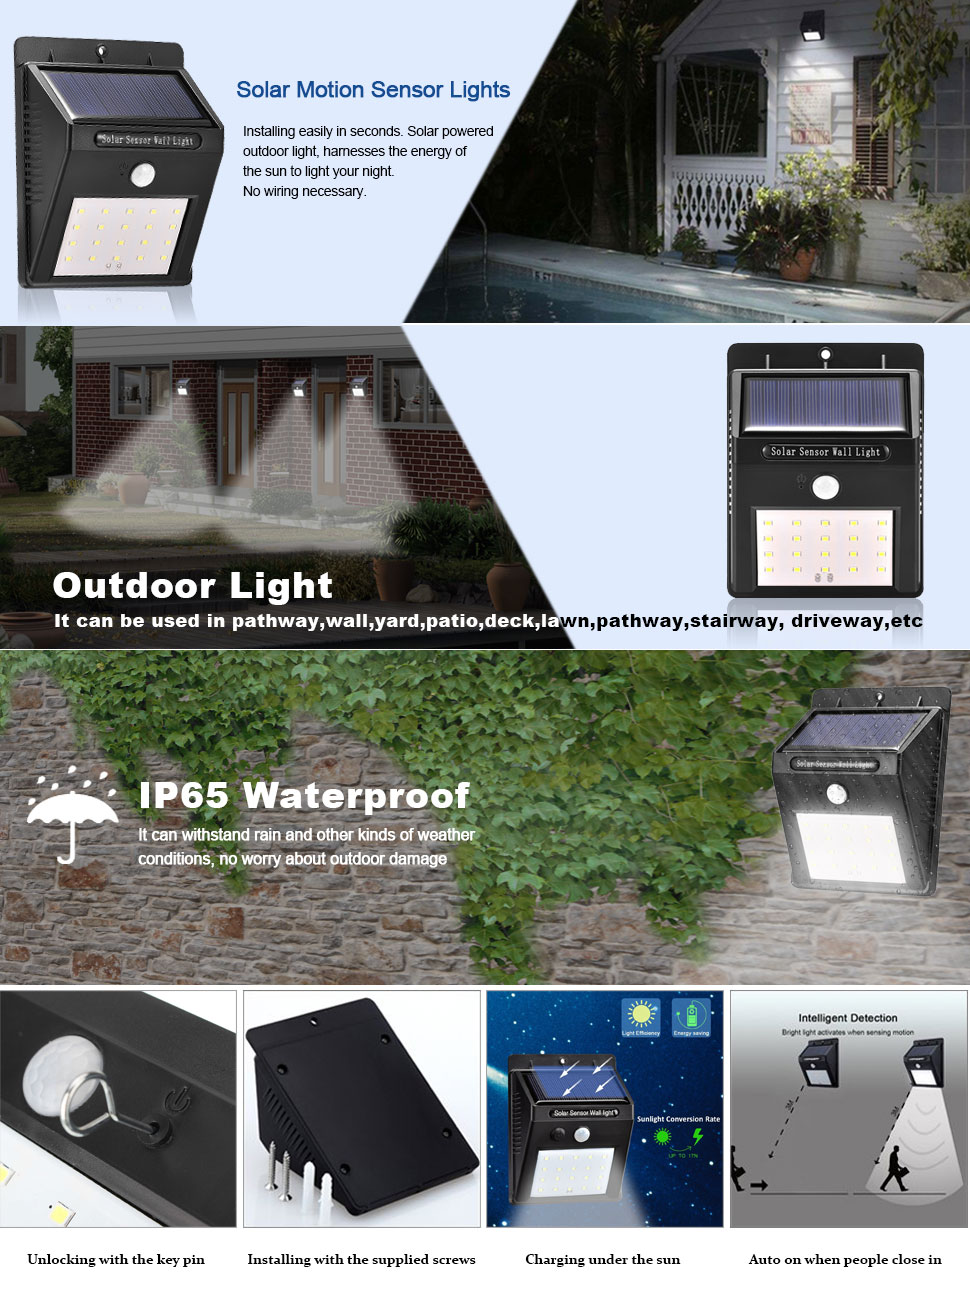 lurico solar lights led wall lights are here to meet your outdoor lighting needs deck lights can now illuminate your garden backyard balcony patio